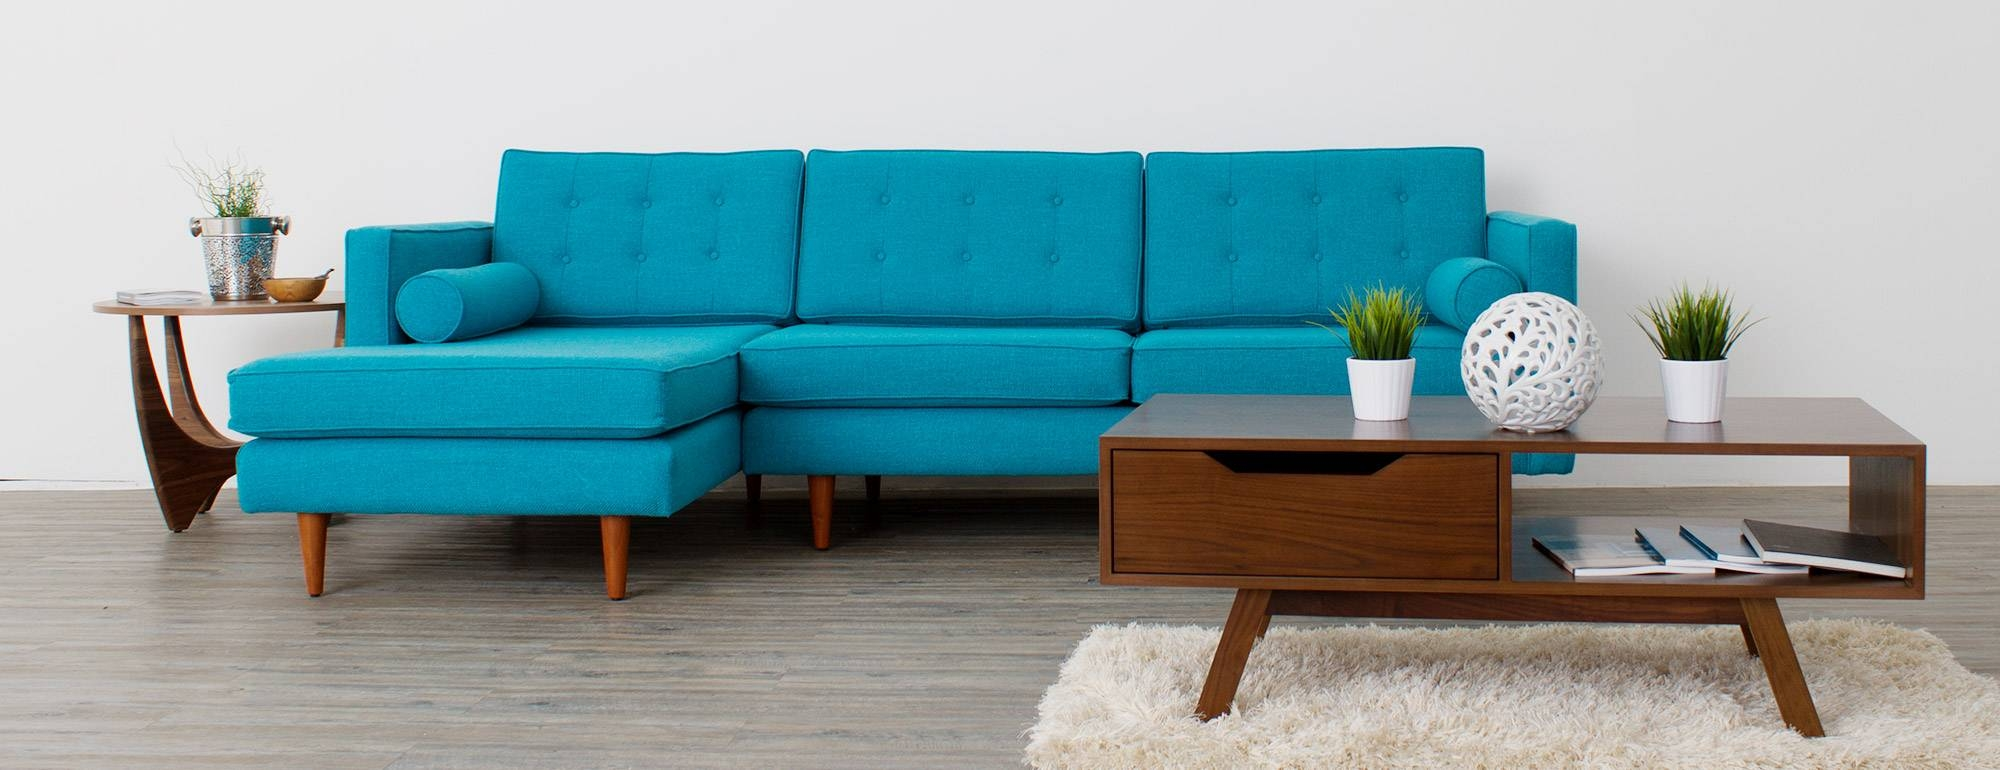 Braxton Sectional | Joybird within Braxton Sectional Sofa (Image 18 of 30)